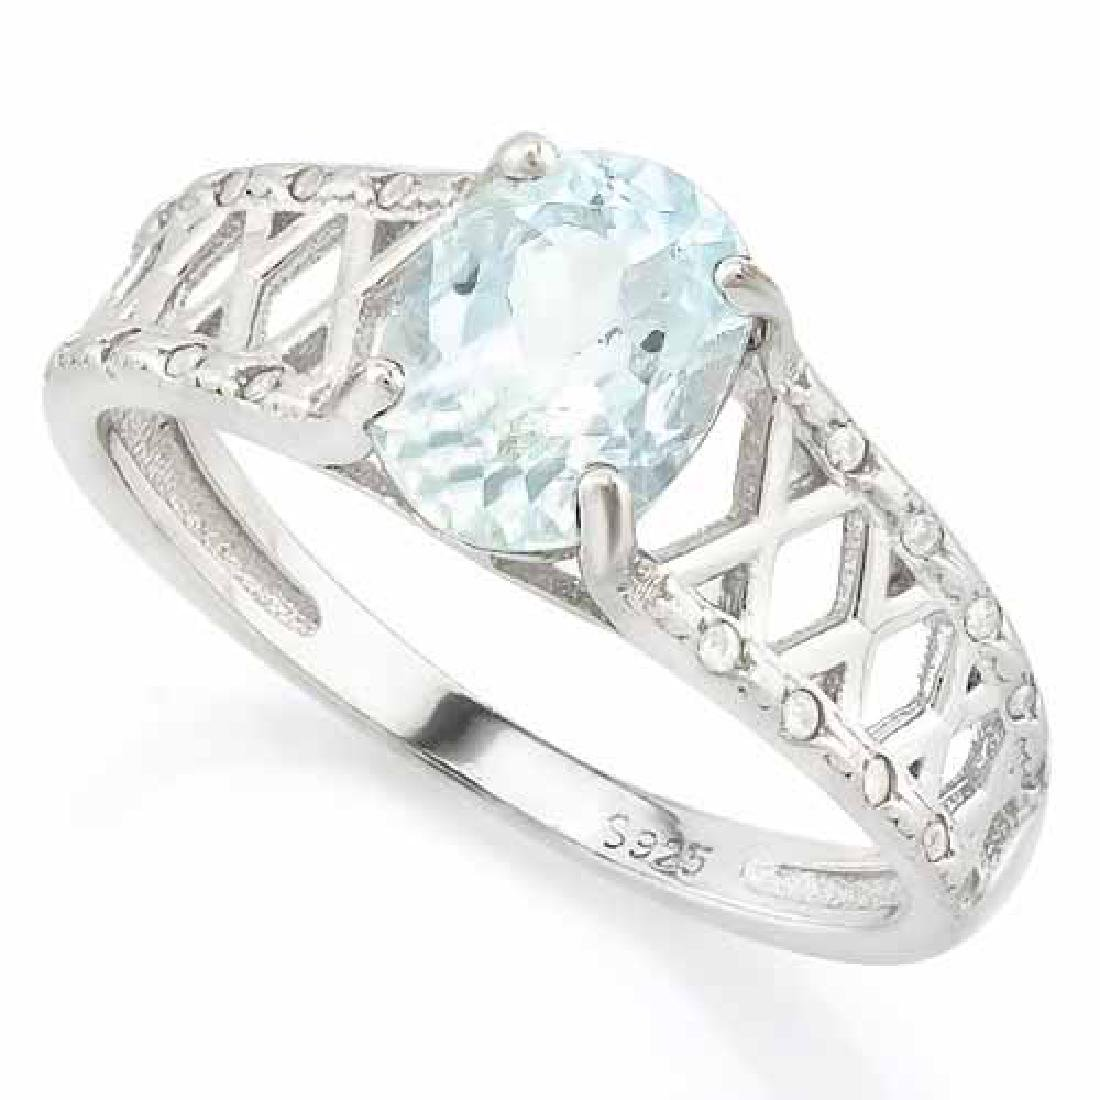 1 CARAT AQUAMARINE & (20 PCS) FLAWLESS CREATED DIAMOND